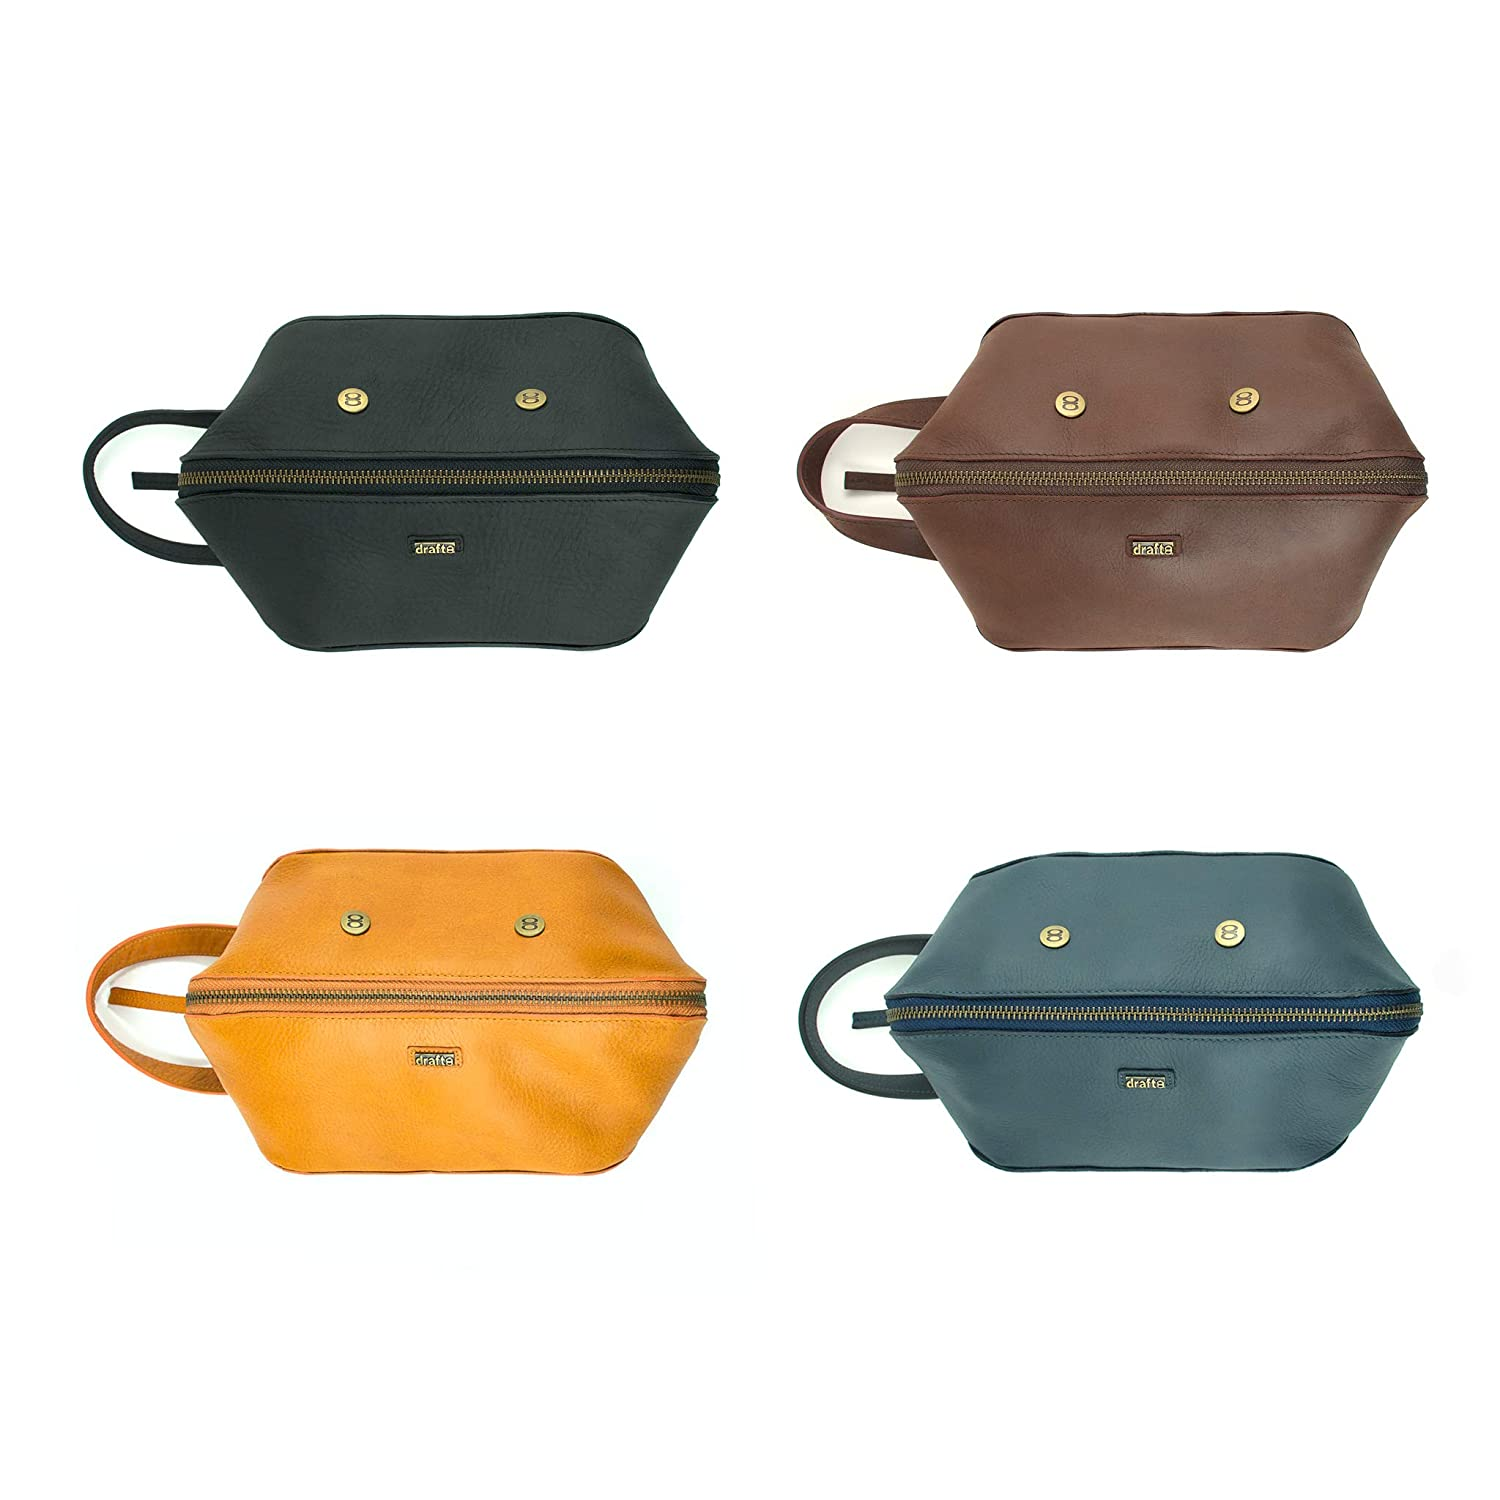 Leather Wrist Removable Pouch Inside draft-8 Leather Goods Unisex Toilet Pouch